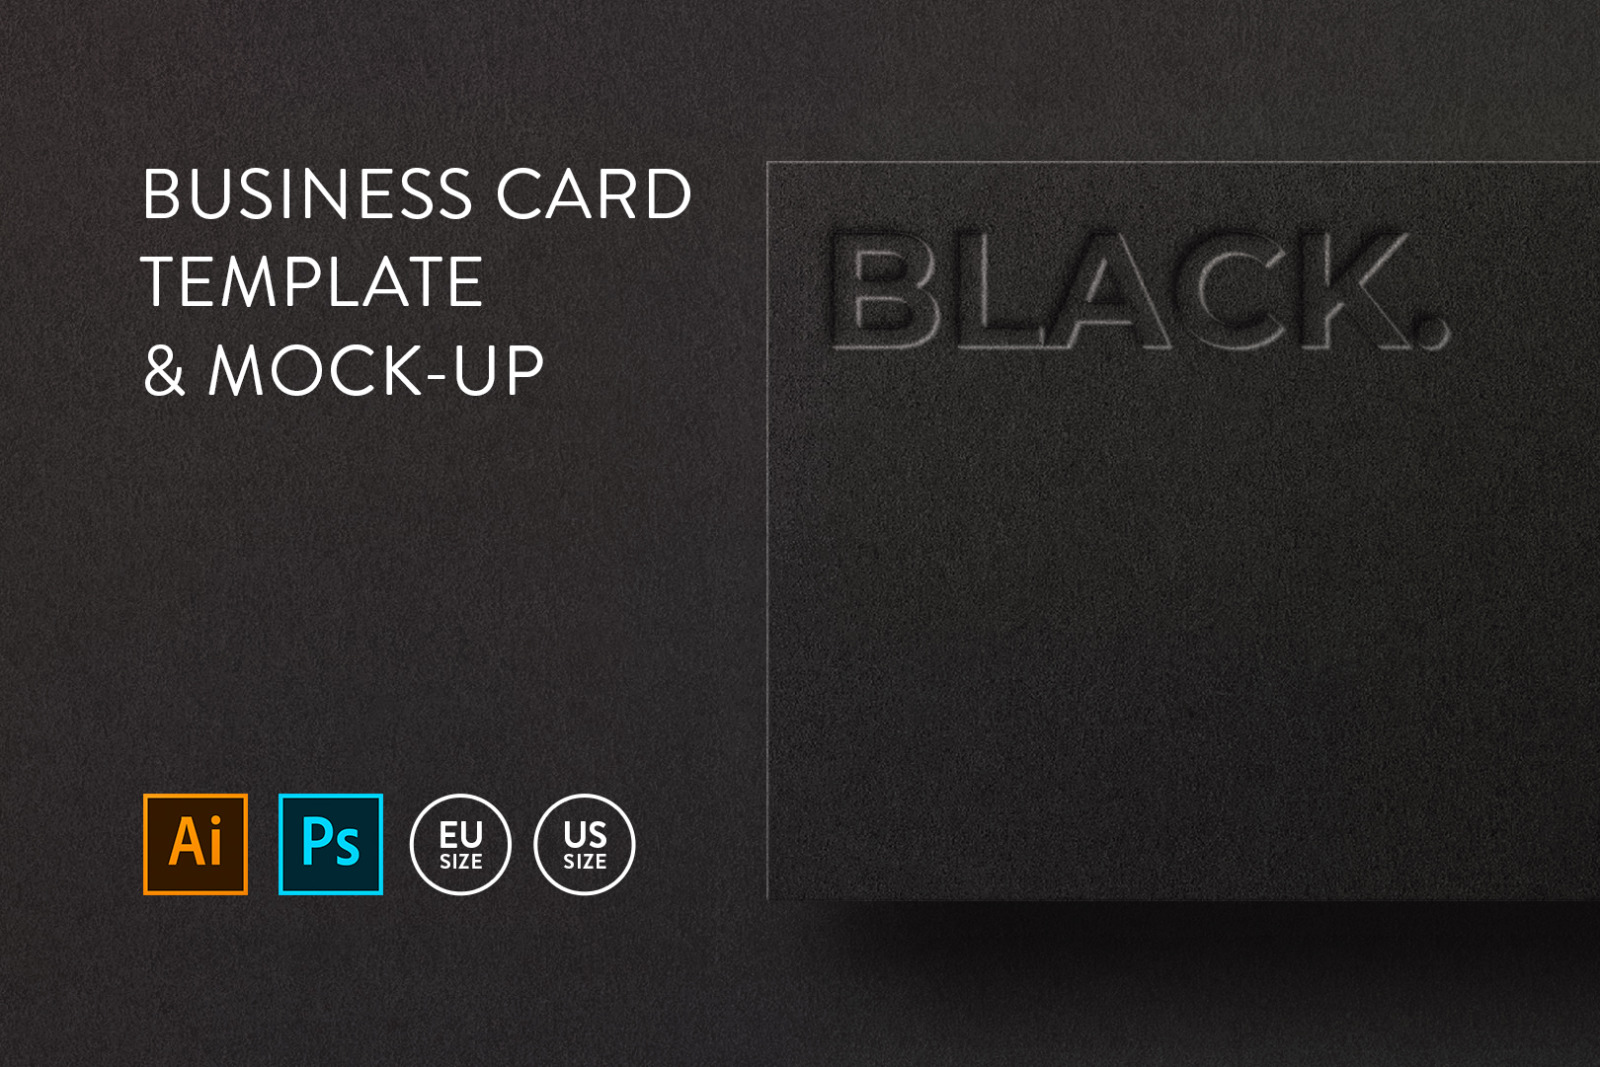 Business card Template & Mock-up #19